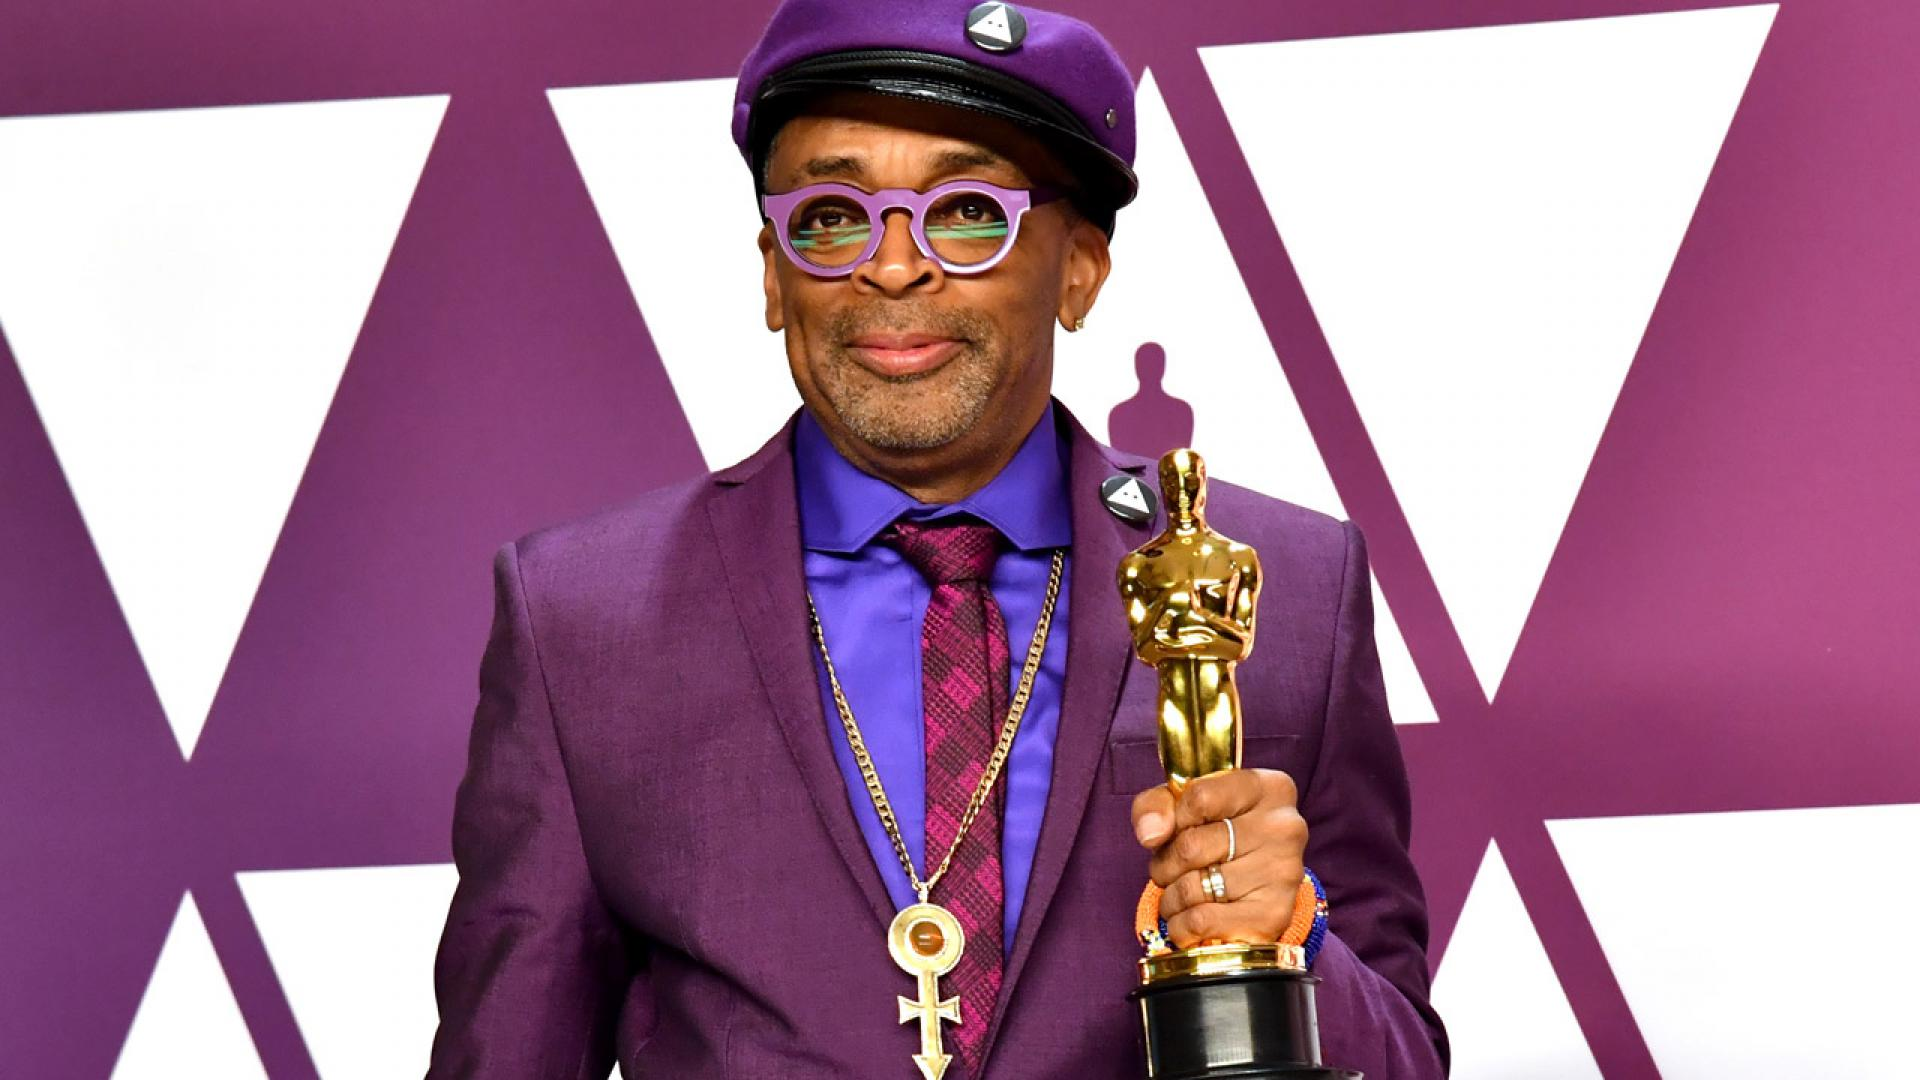 """""""Make the moral choice between love versus hate,"""" Spike Lee said. """"Let's do the right thing!"""""""